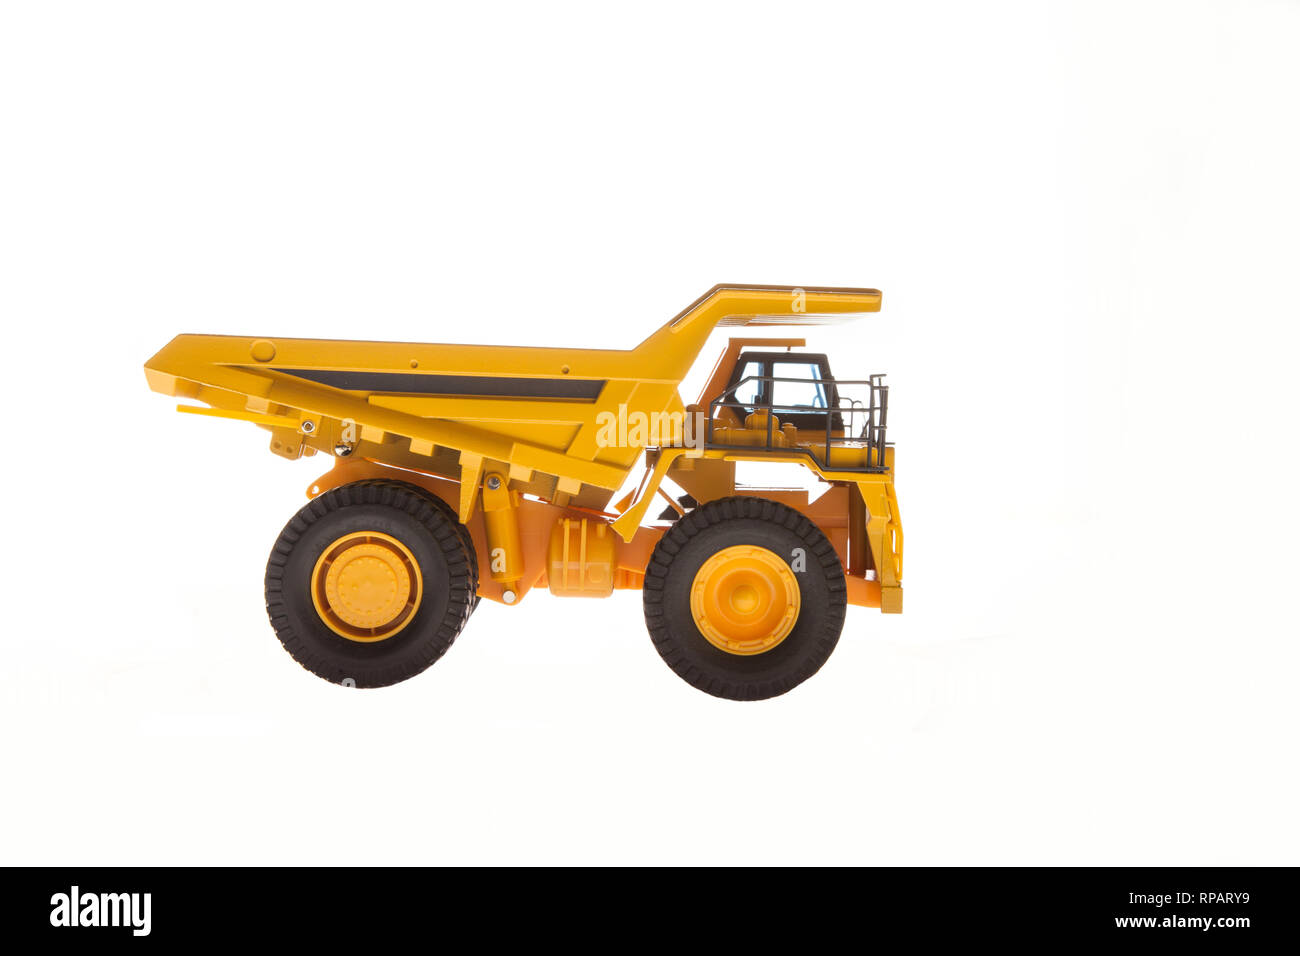 Heavy Load Dump Truck Carrier Side View - Stock Image